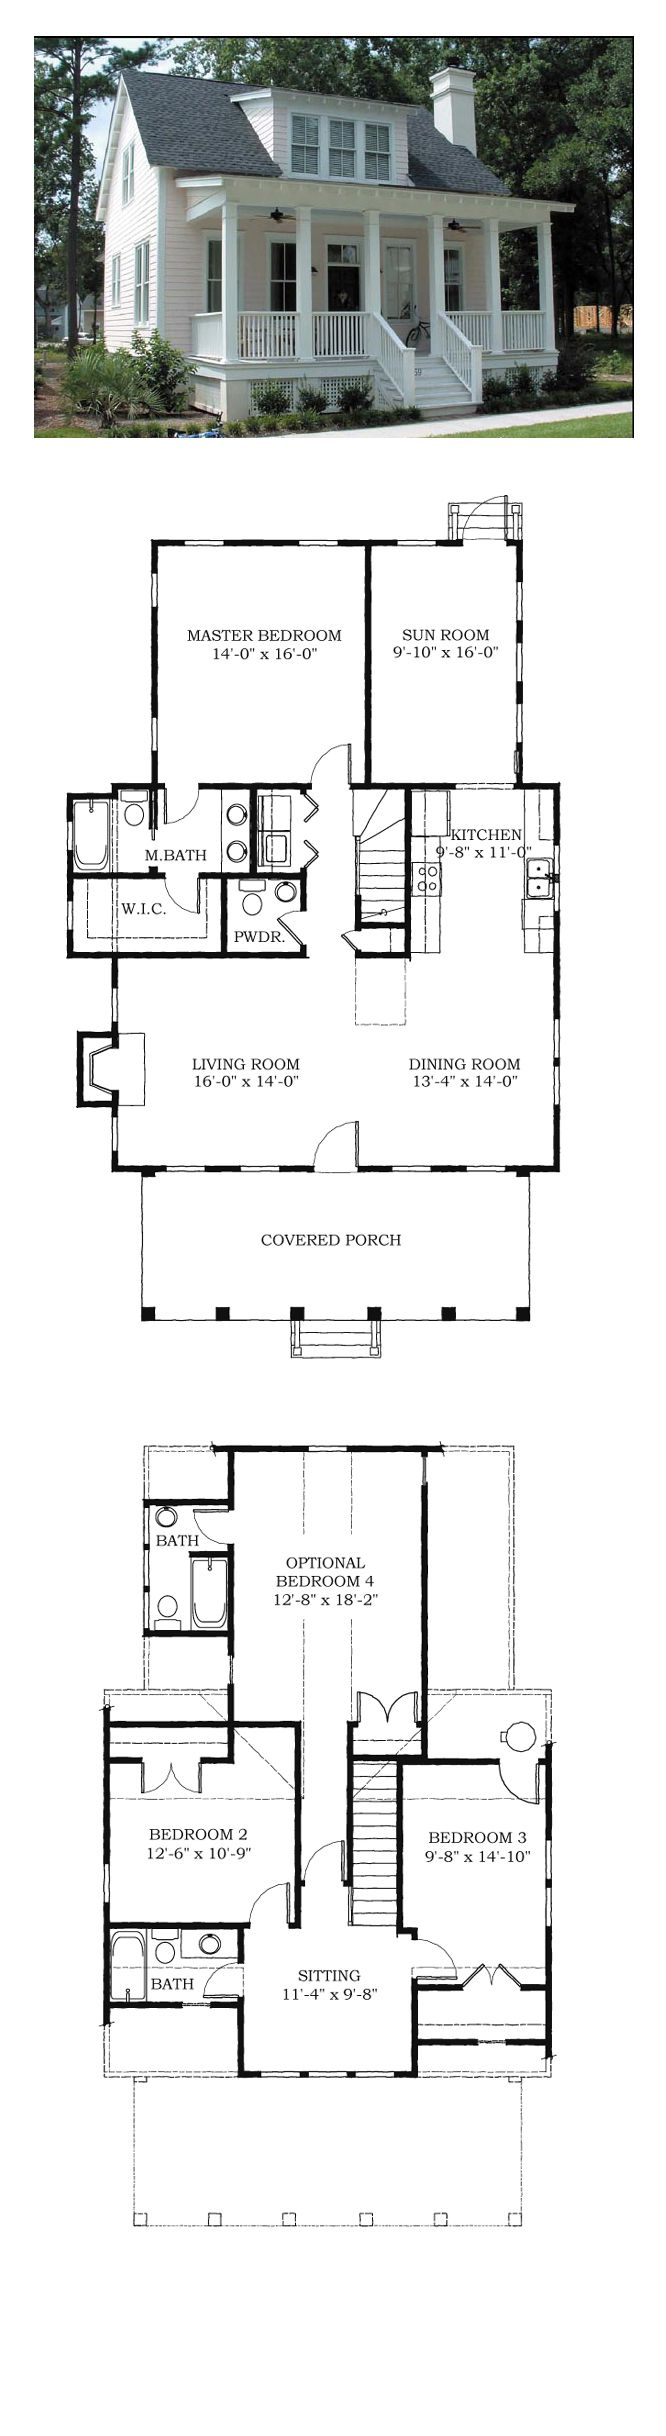 cool house plan id chp 38703 total living area 1783 sq - Small House Blueprints